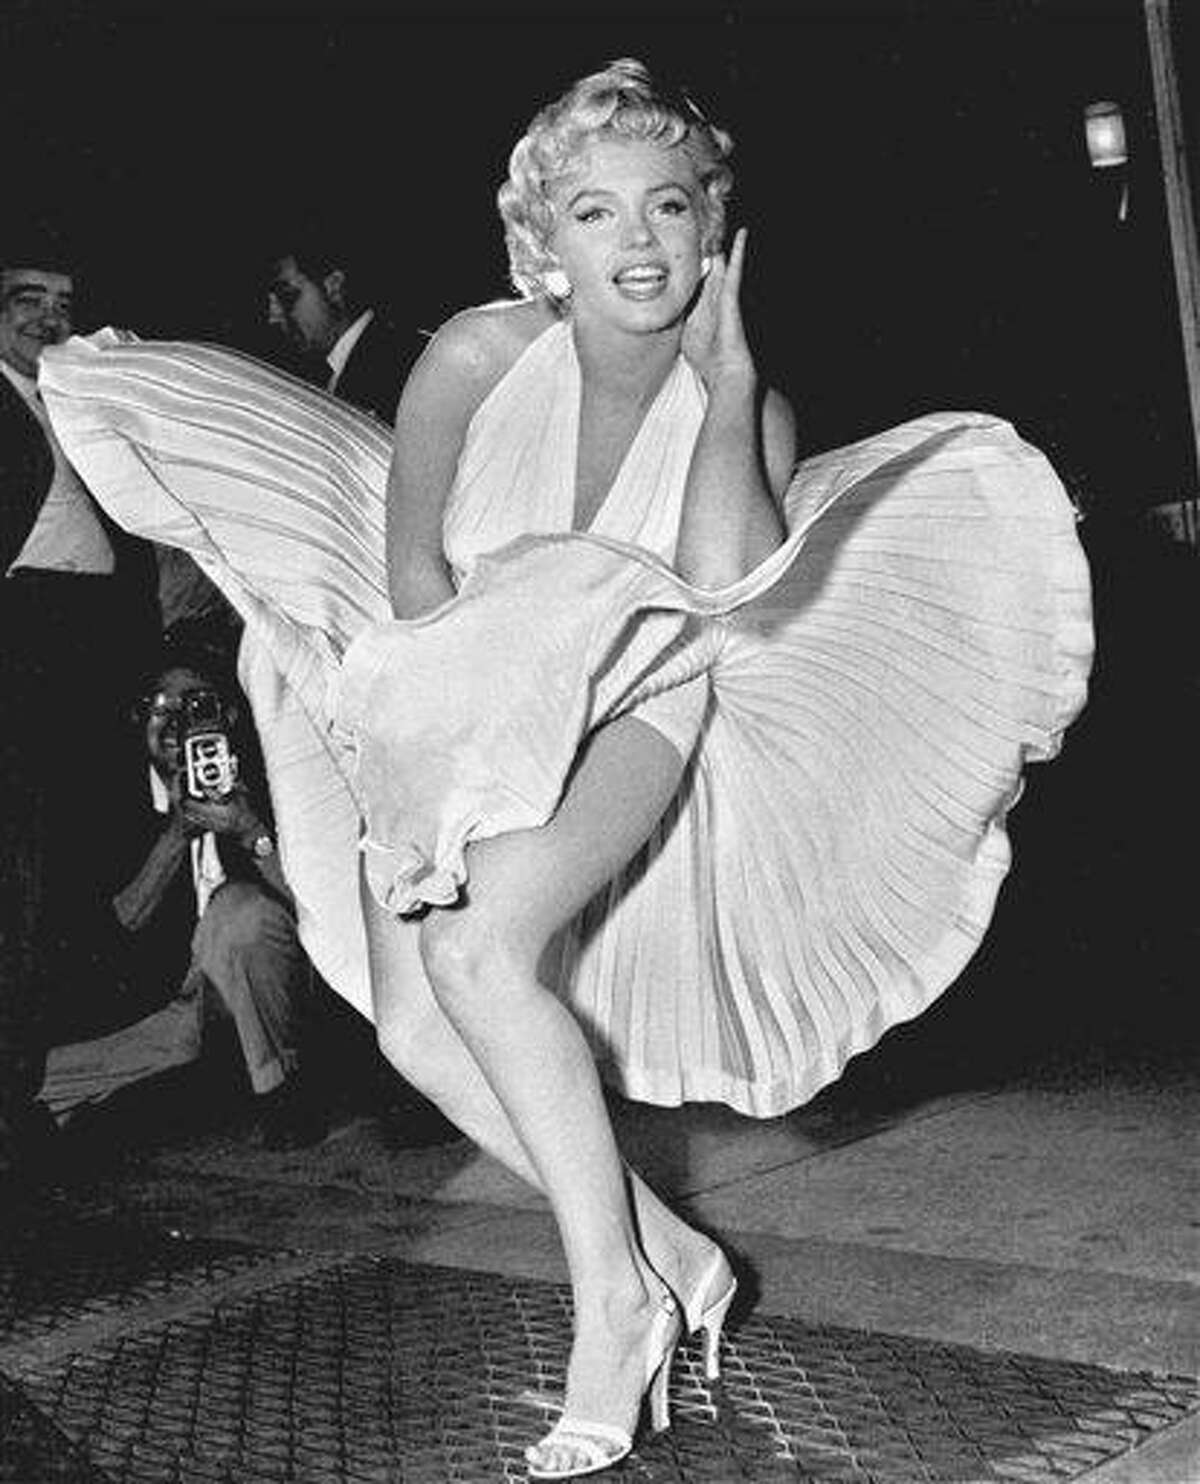 FILE - In this Sept. 9, 1954 file photo, Marilyn Monroe poses over the updraft of New York subway grating while in character for the filming of